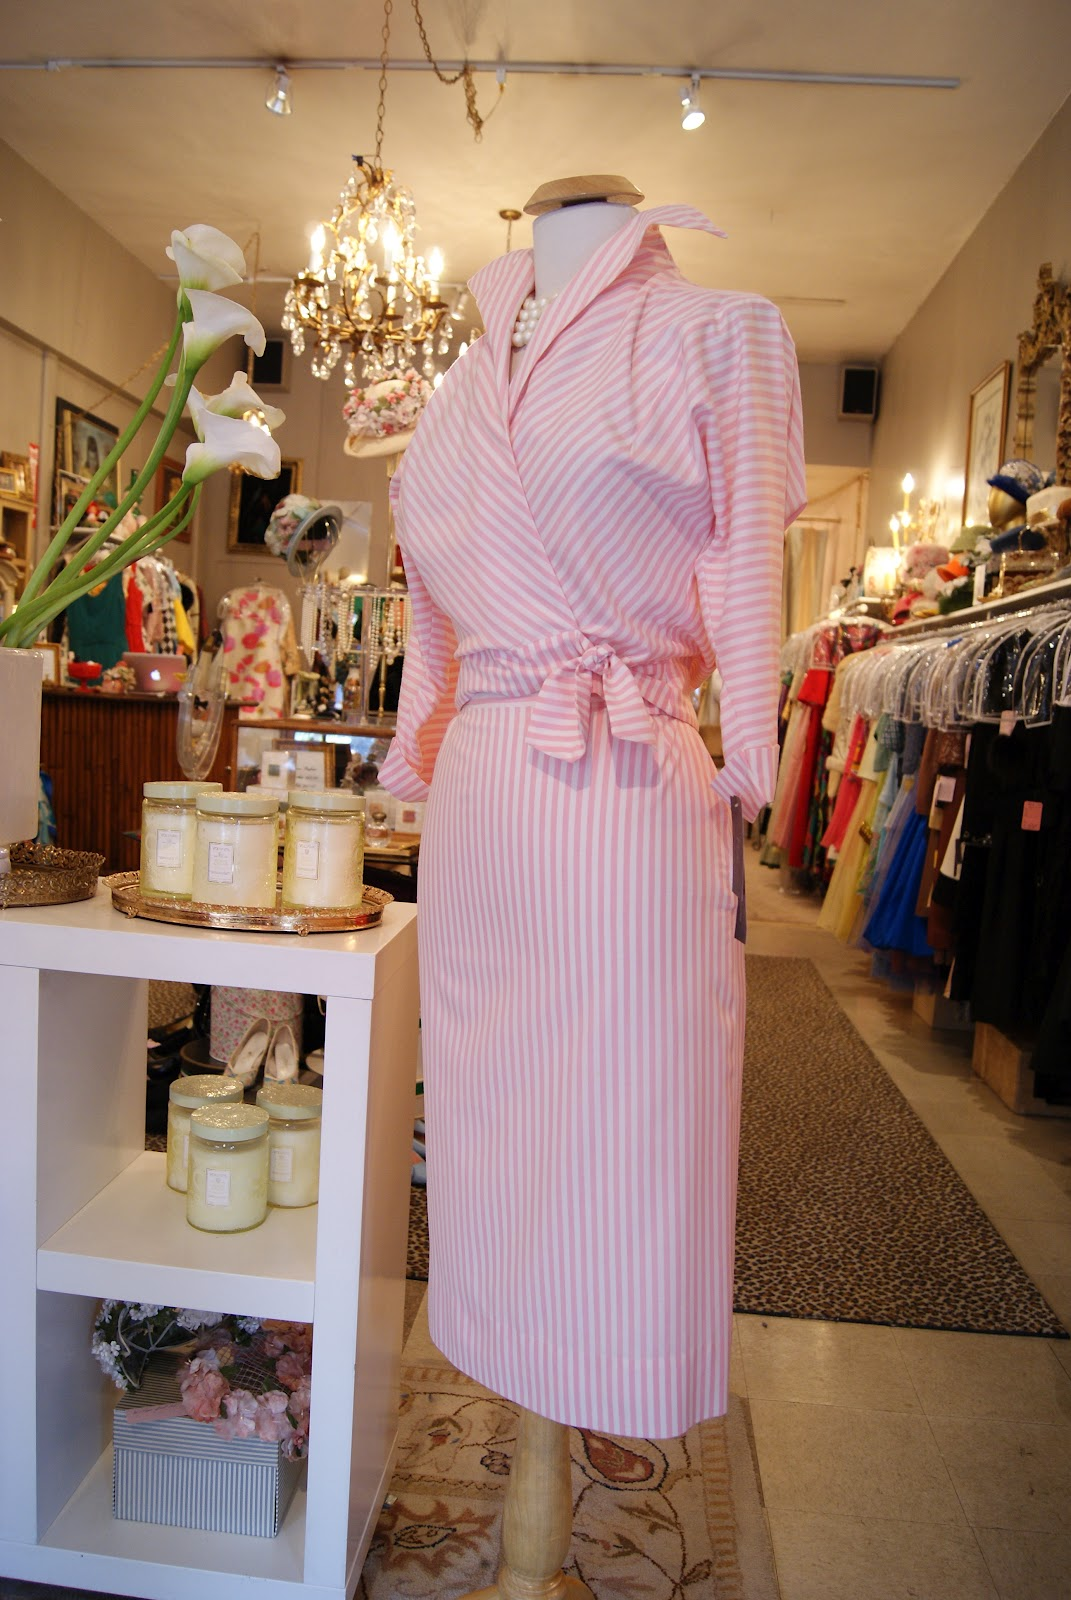 Xtabay vintage clothing boutique portland oregon what to wear monday june 25 2012 ombrellifo Gallery